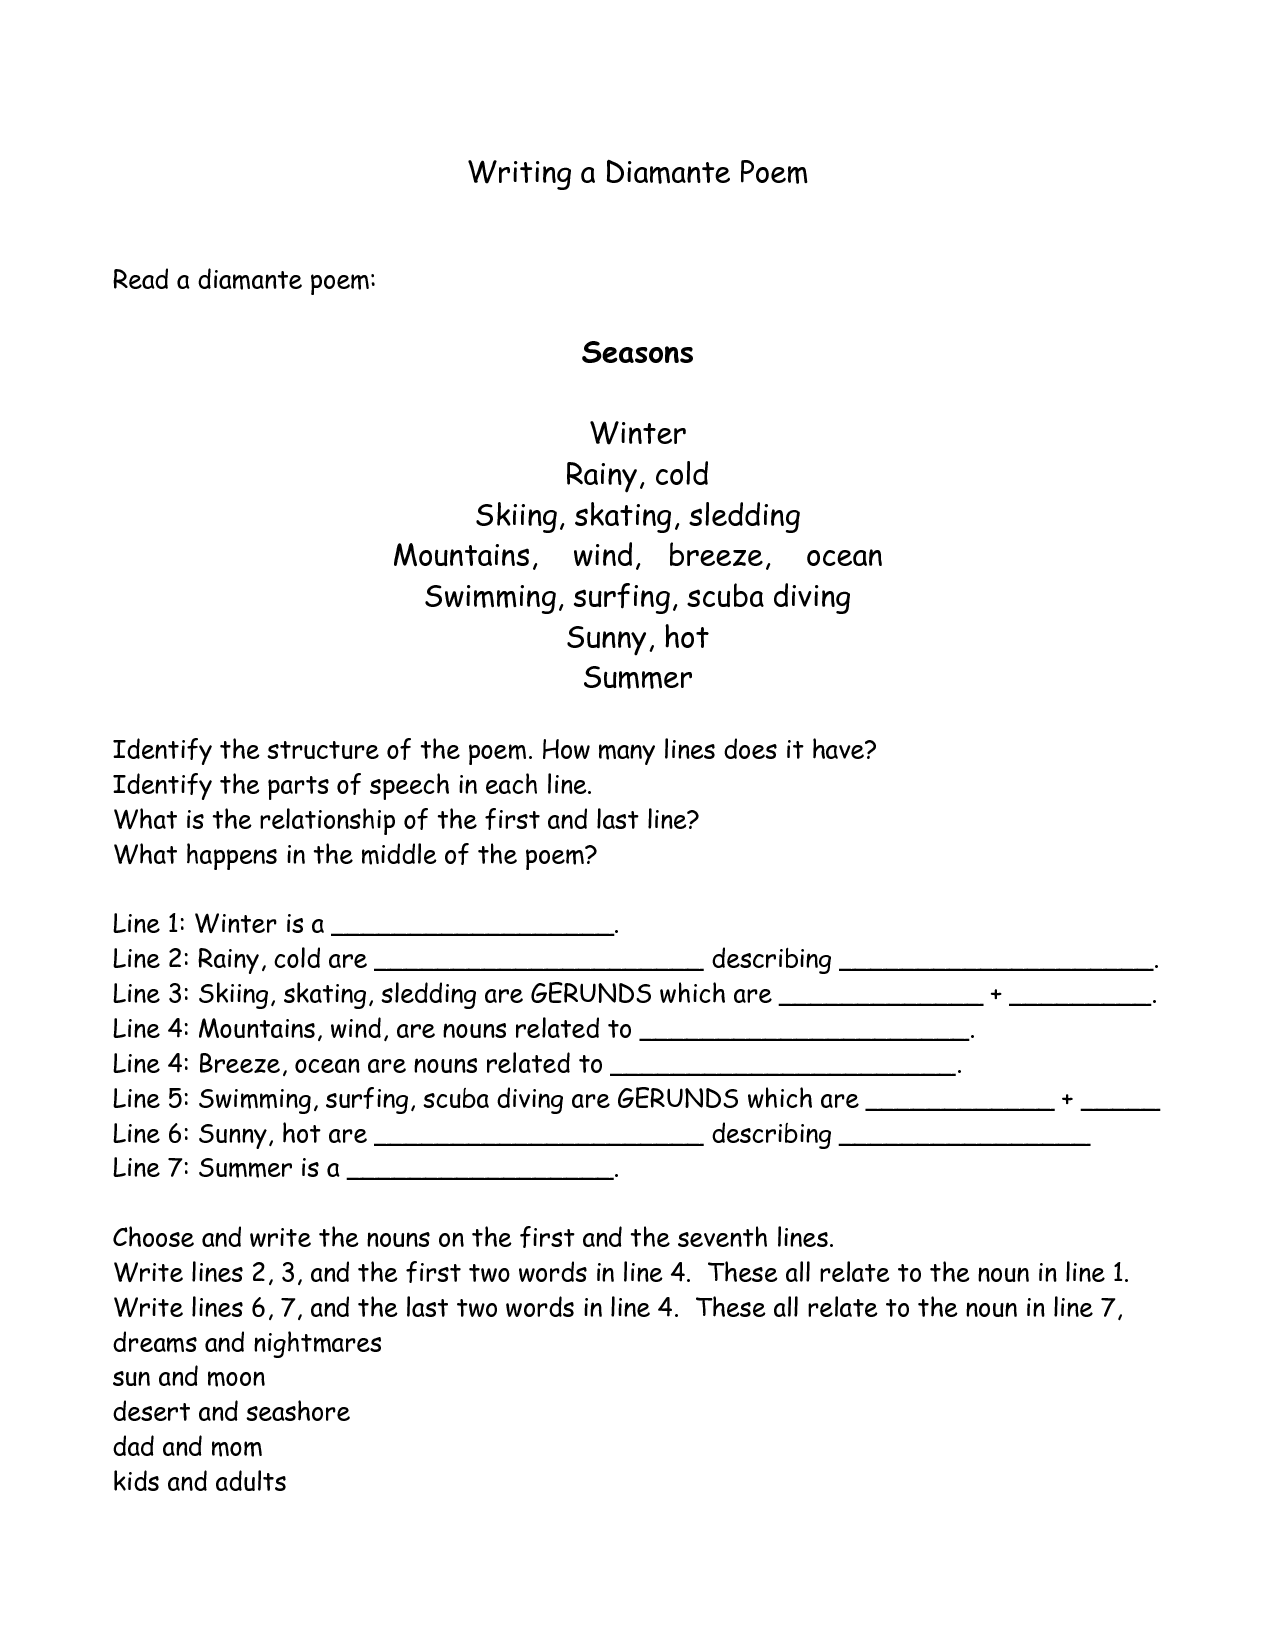 Writing A Diamante Poem Poem Template Teaching Writing Writing